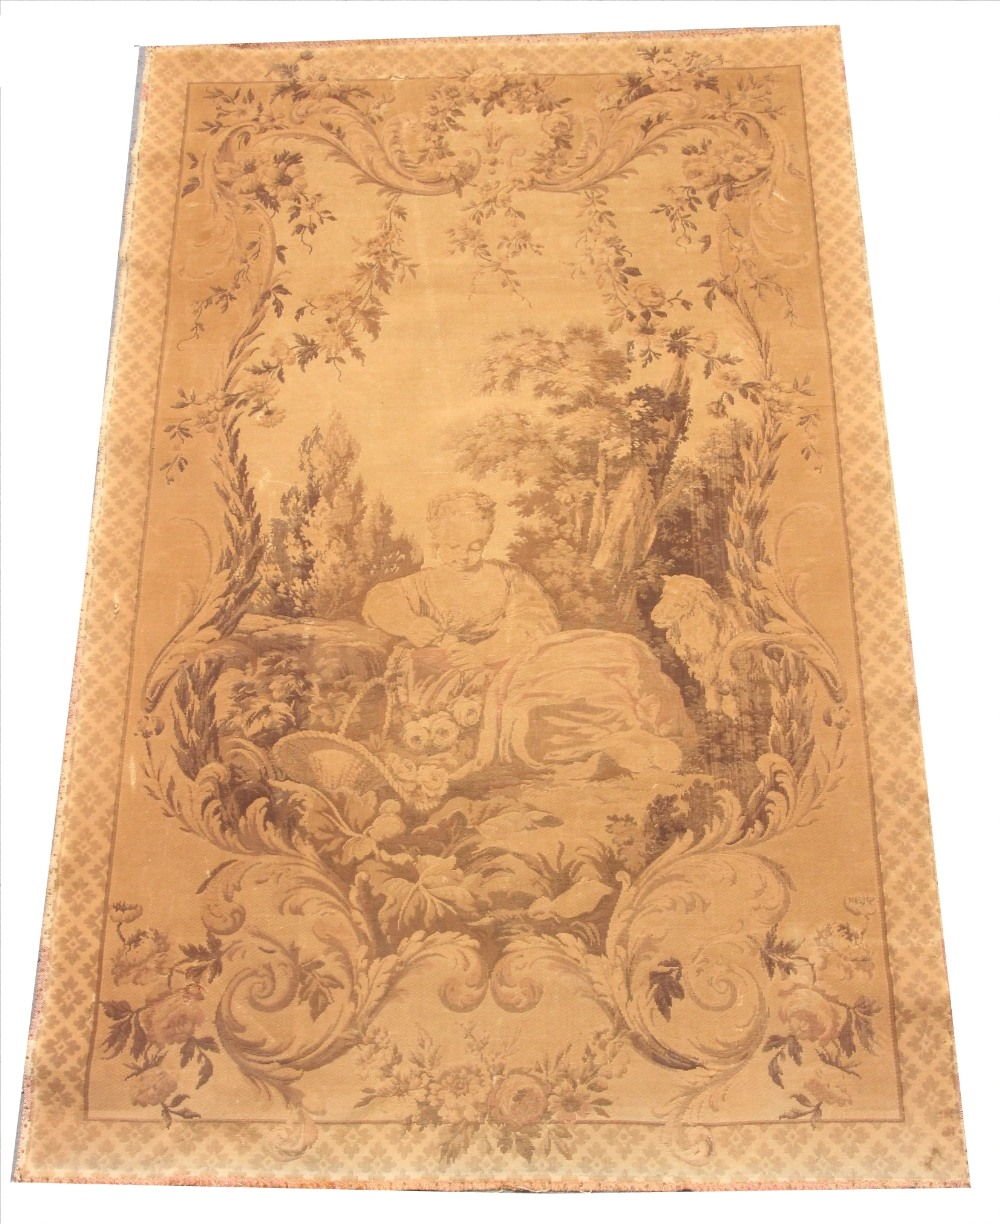 An early 20th century French machine woven tapestry, depicting architectural columns in a tree lined - Image 2 of 2